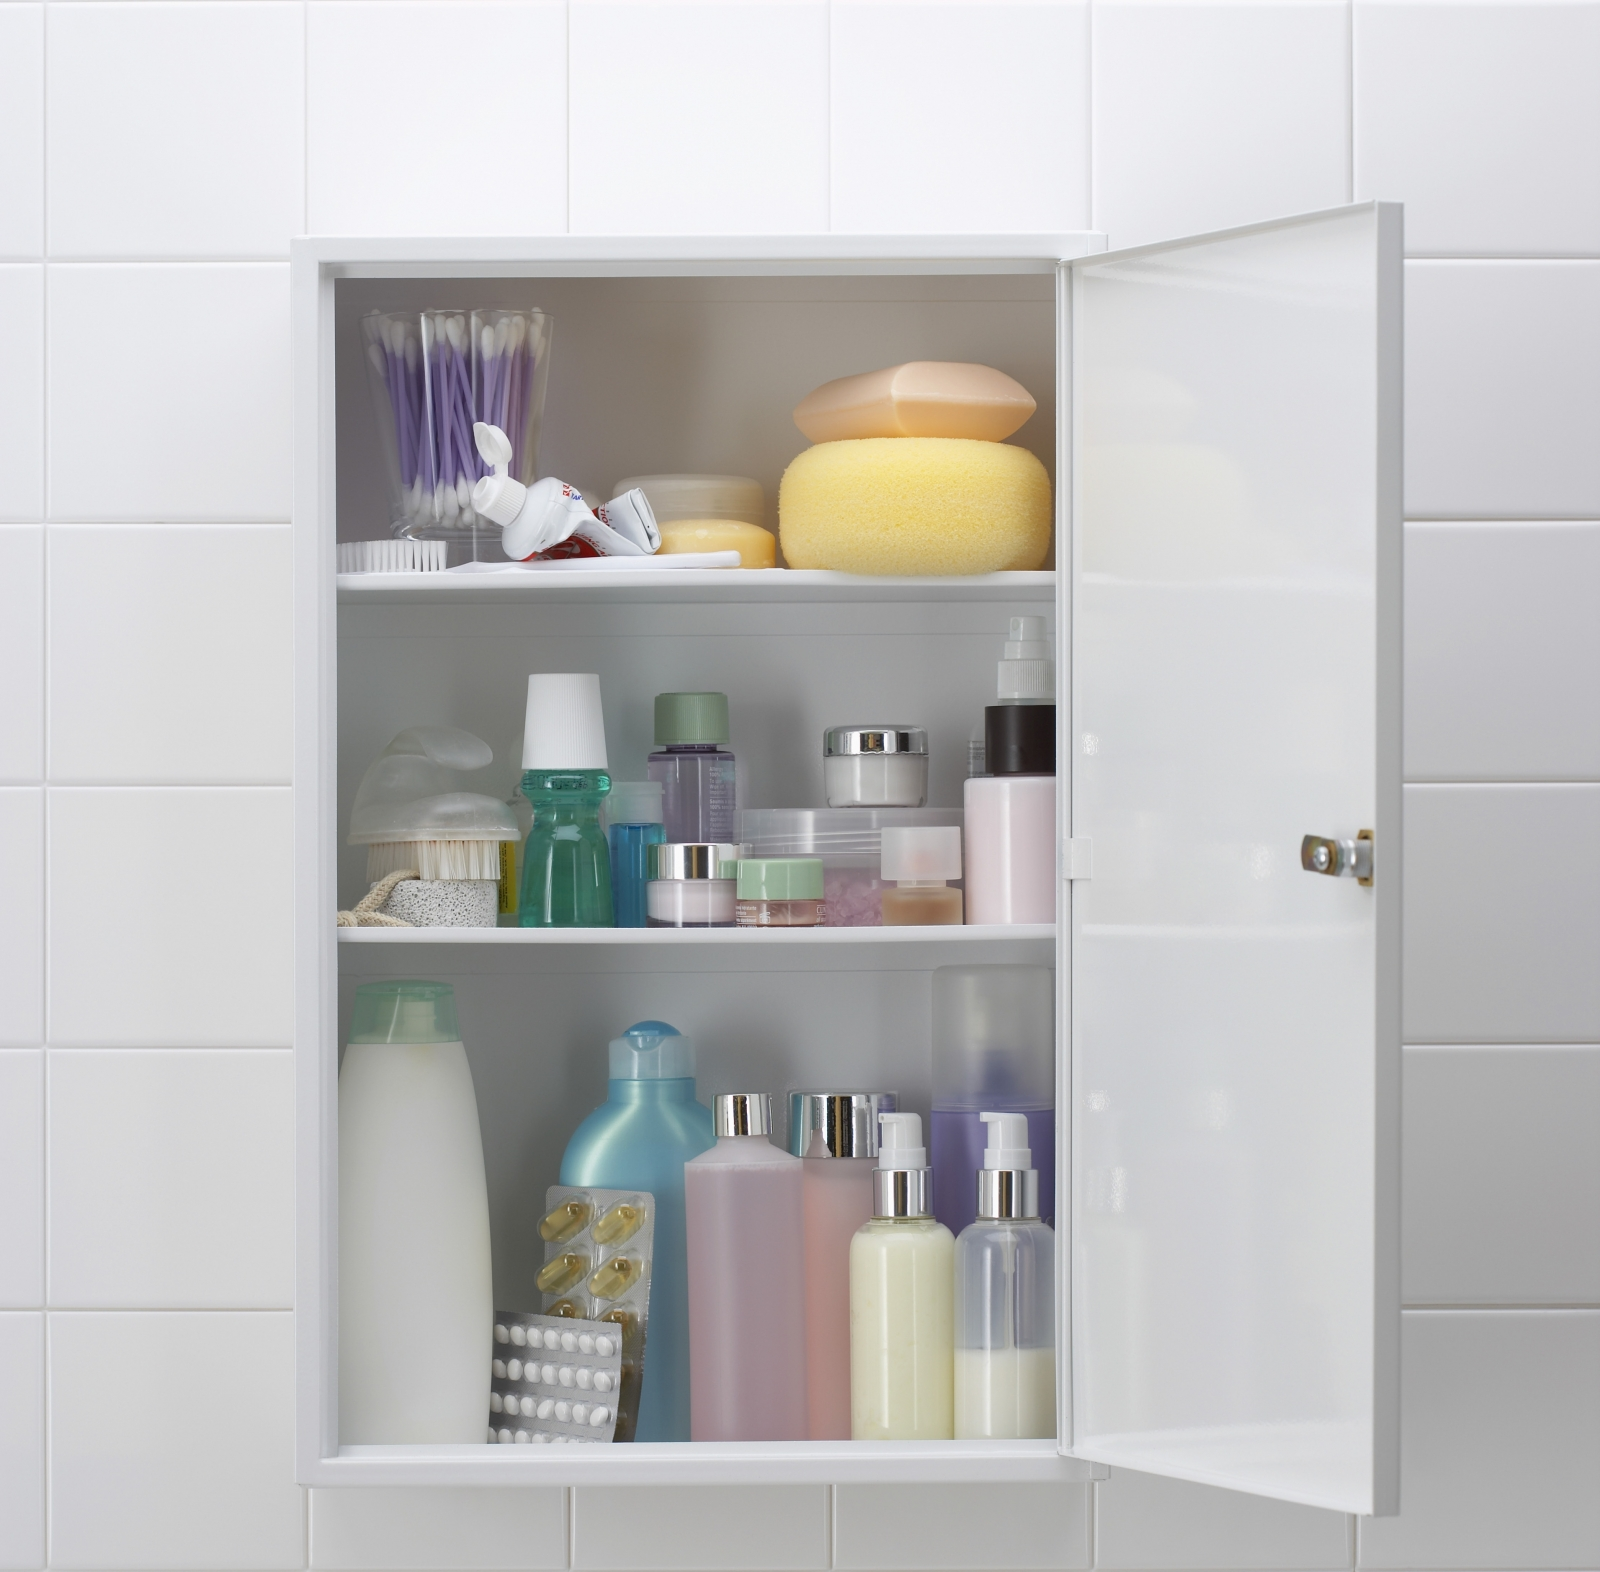 Bathrrom Storage Ideas How To Make The Most Of Your Space Streeteasy